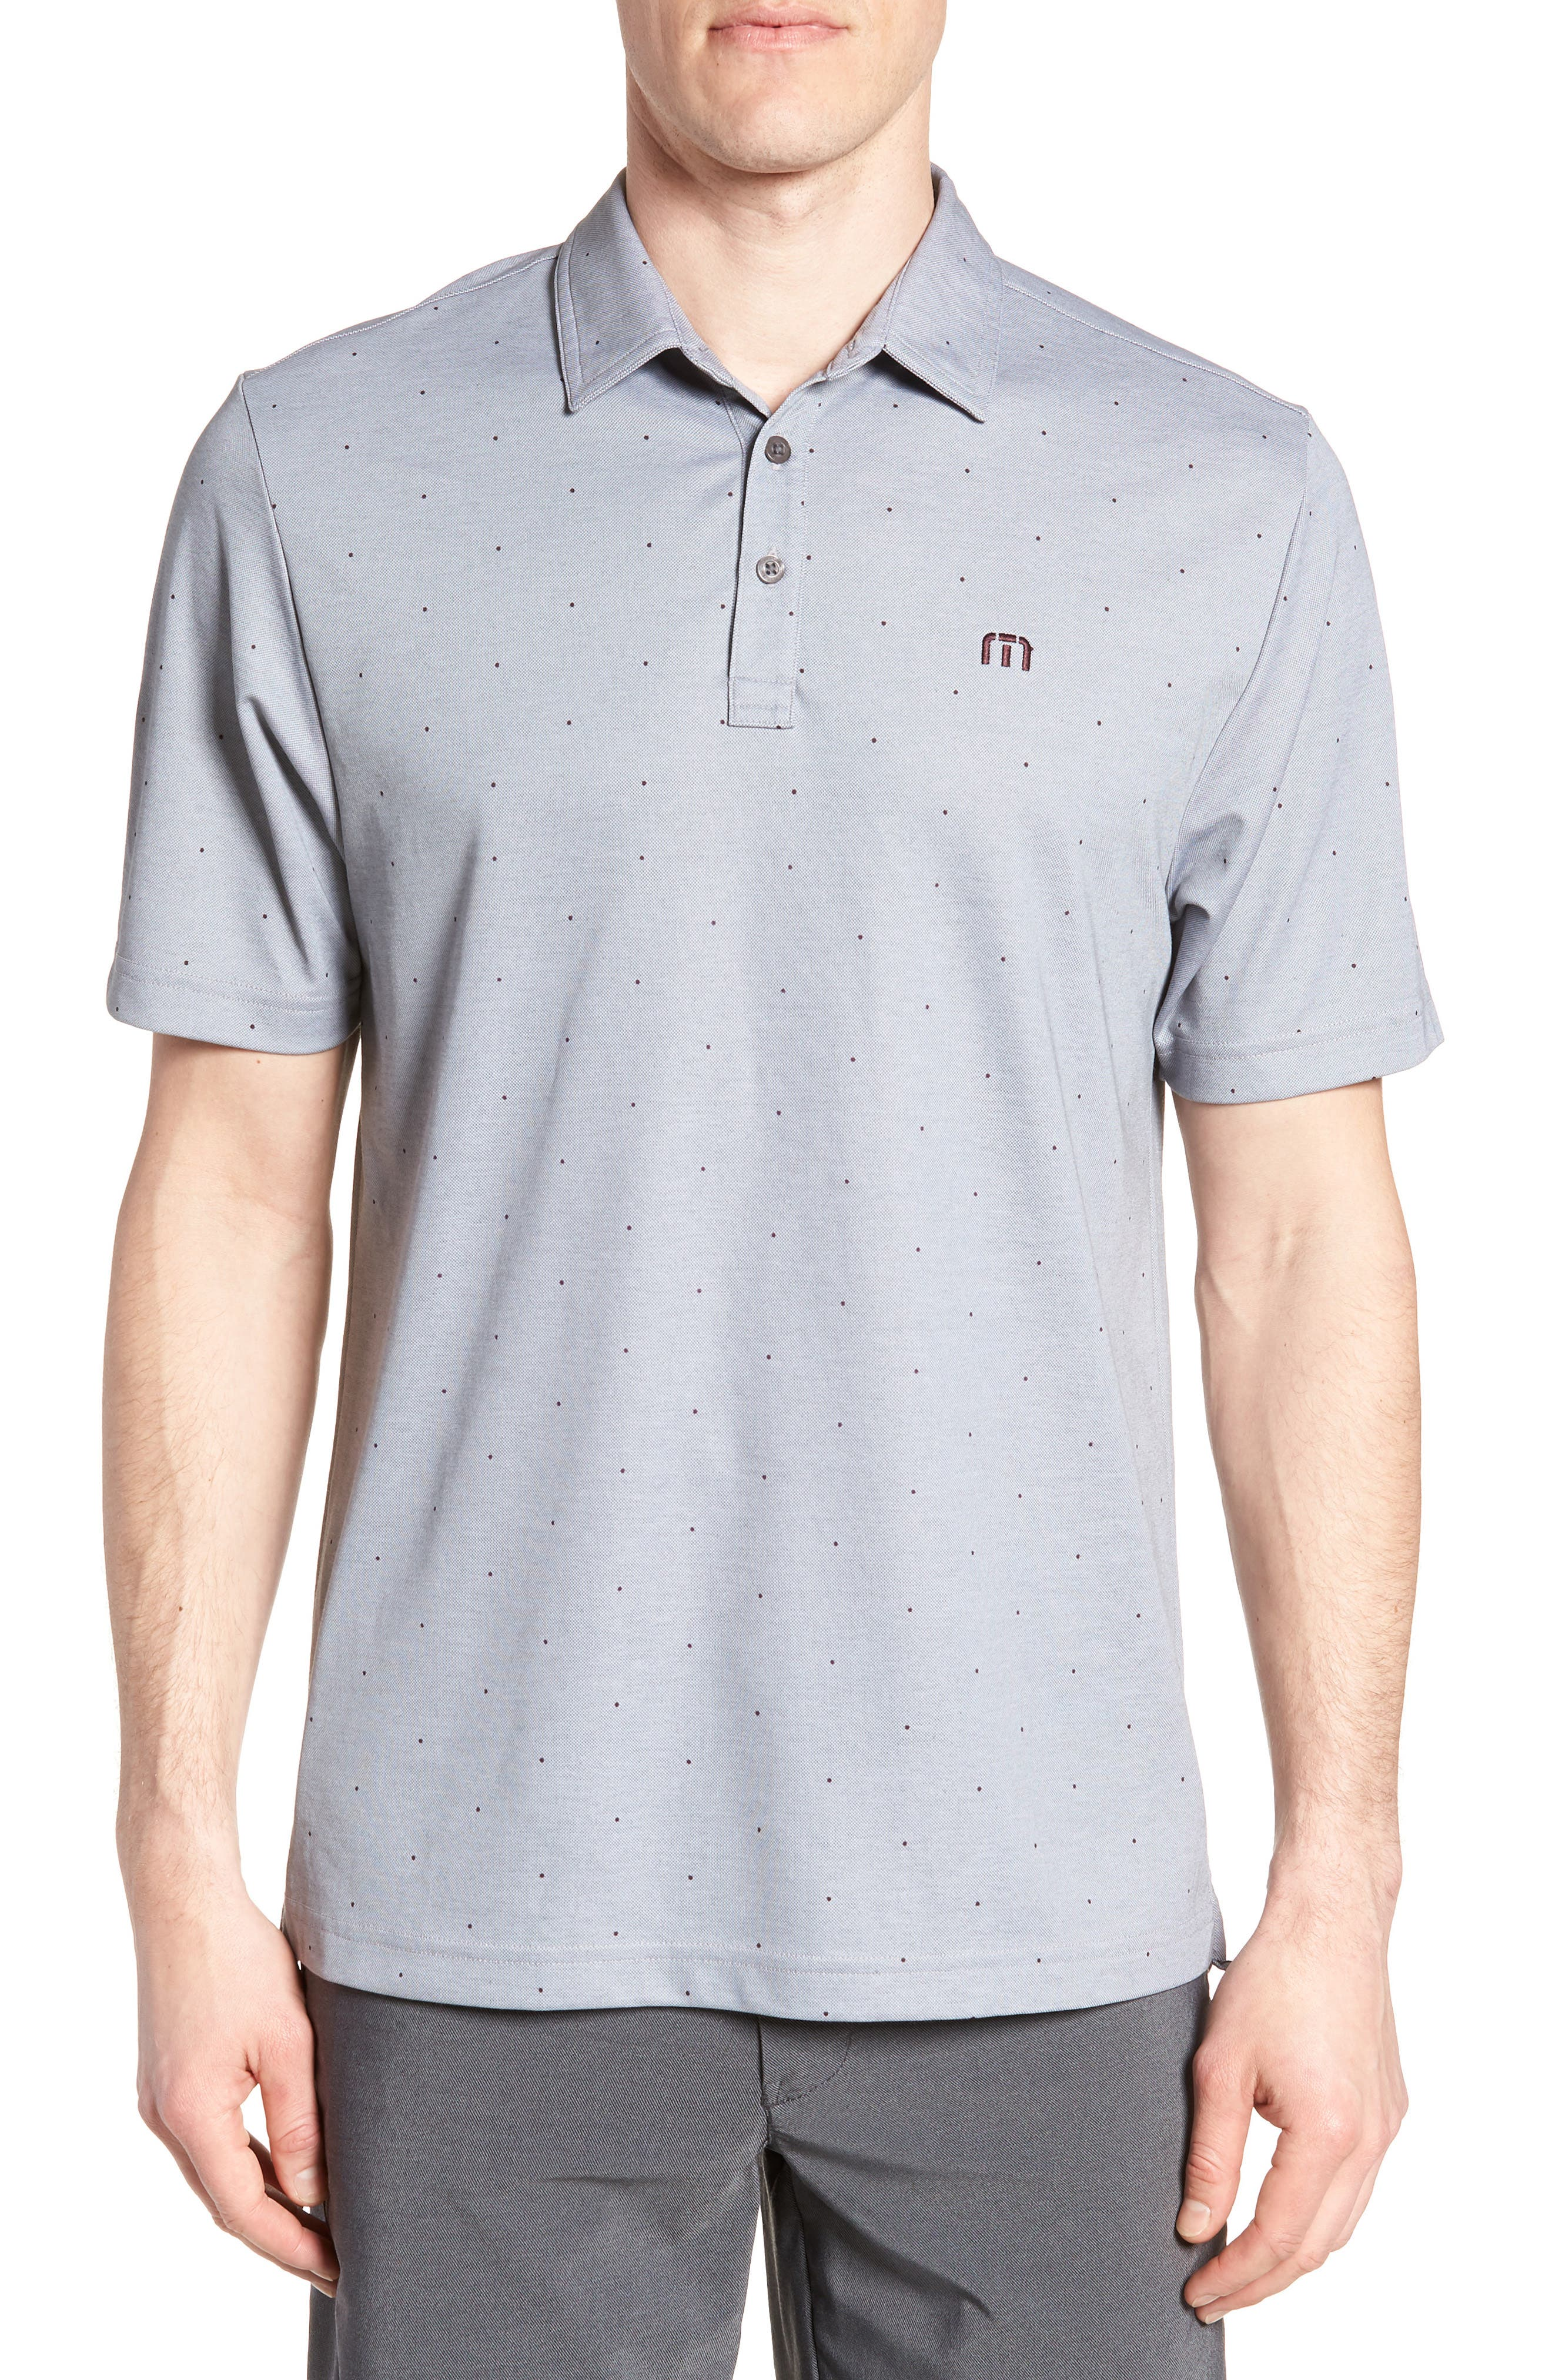 'JJ's Legacy' Trim Fit Polka Dot Polo,                             Main thumbnail 1, color,                             Heather Quiet Shade